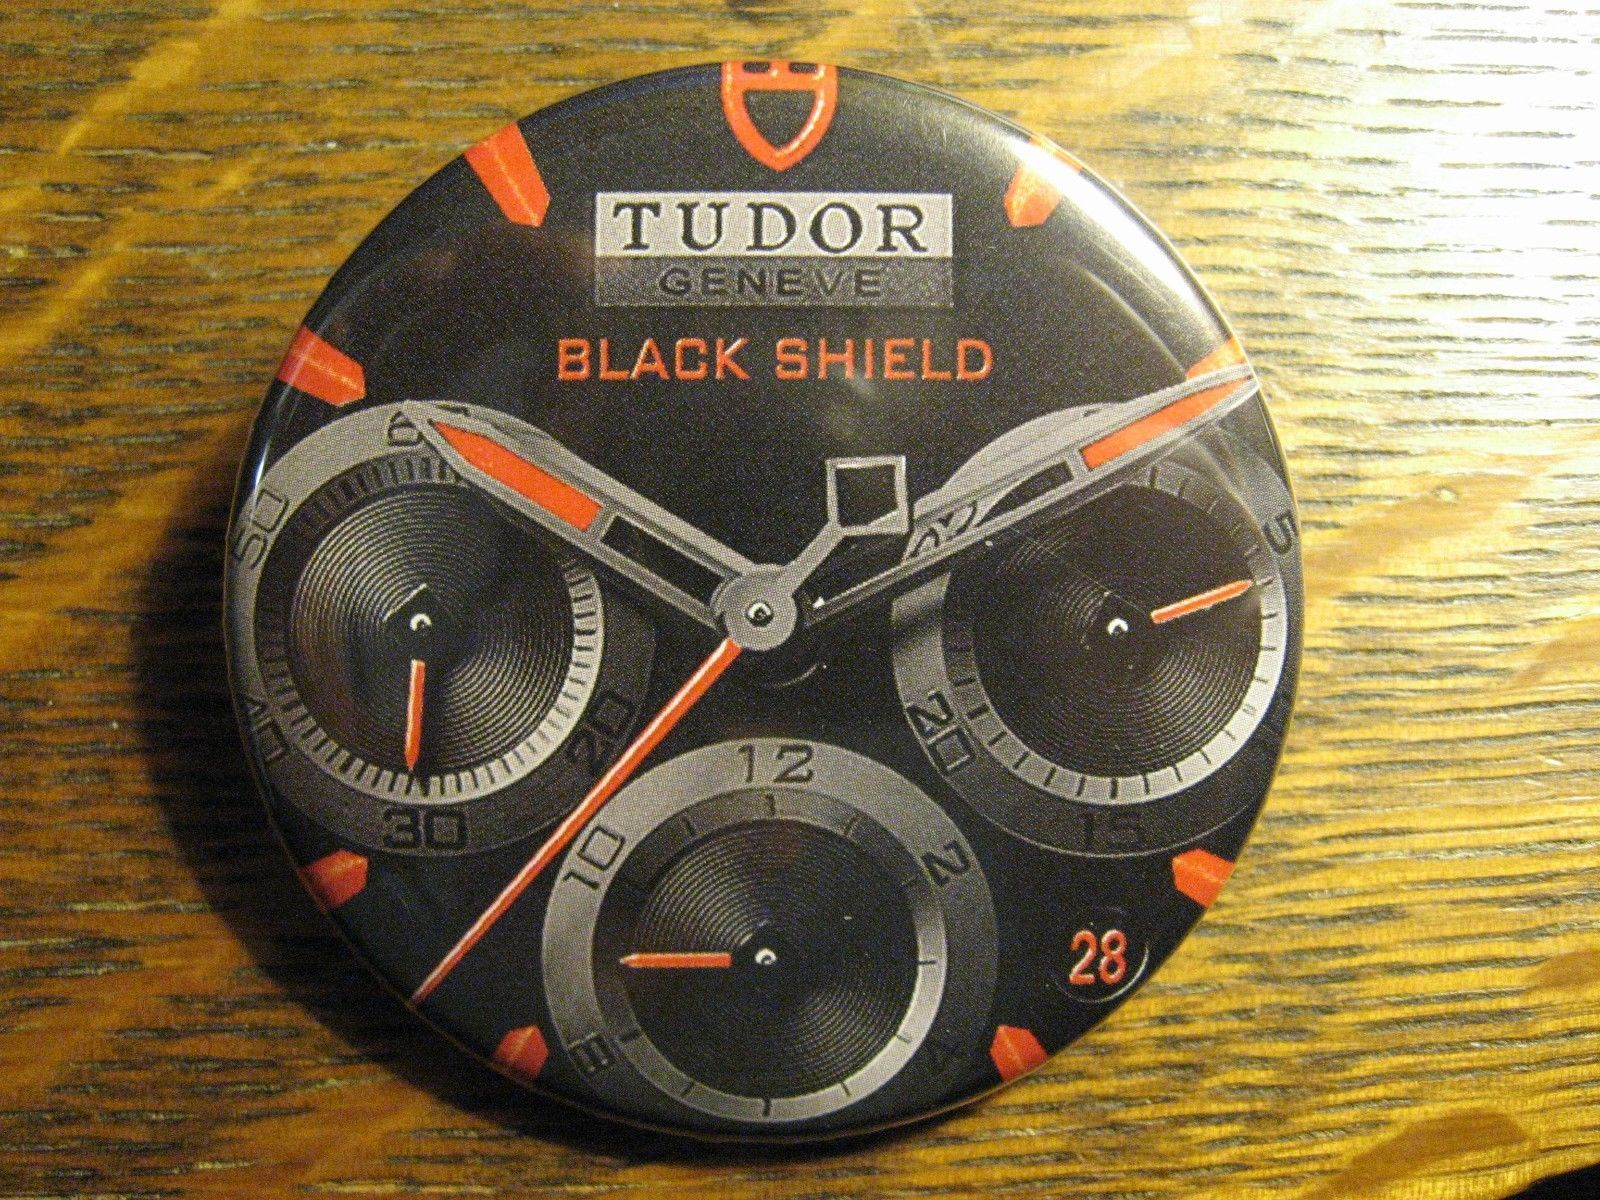 Tudor geneve black shield swiss made wrist watch advertisement lapel button pin other for Tudor geneve watches